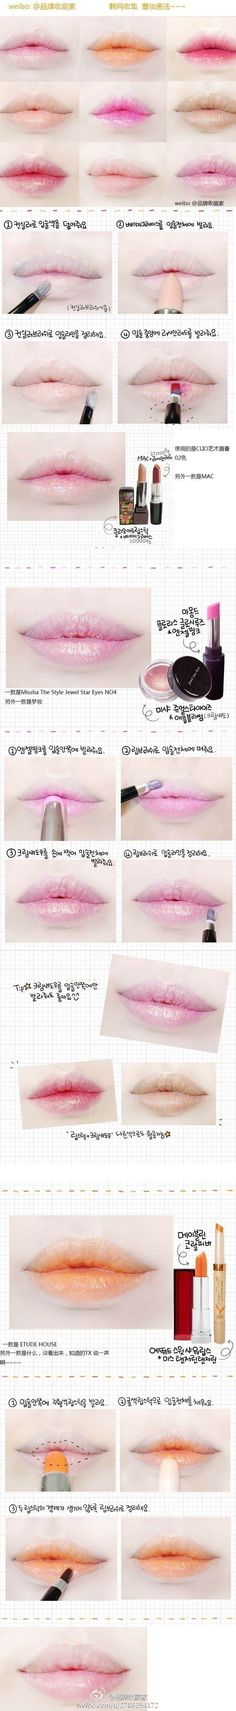 Korean make up, using eyeshadows to create iridescent lips